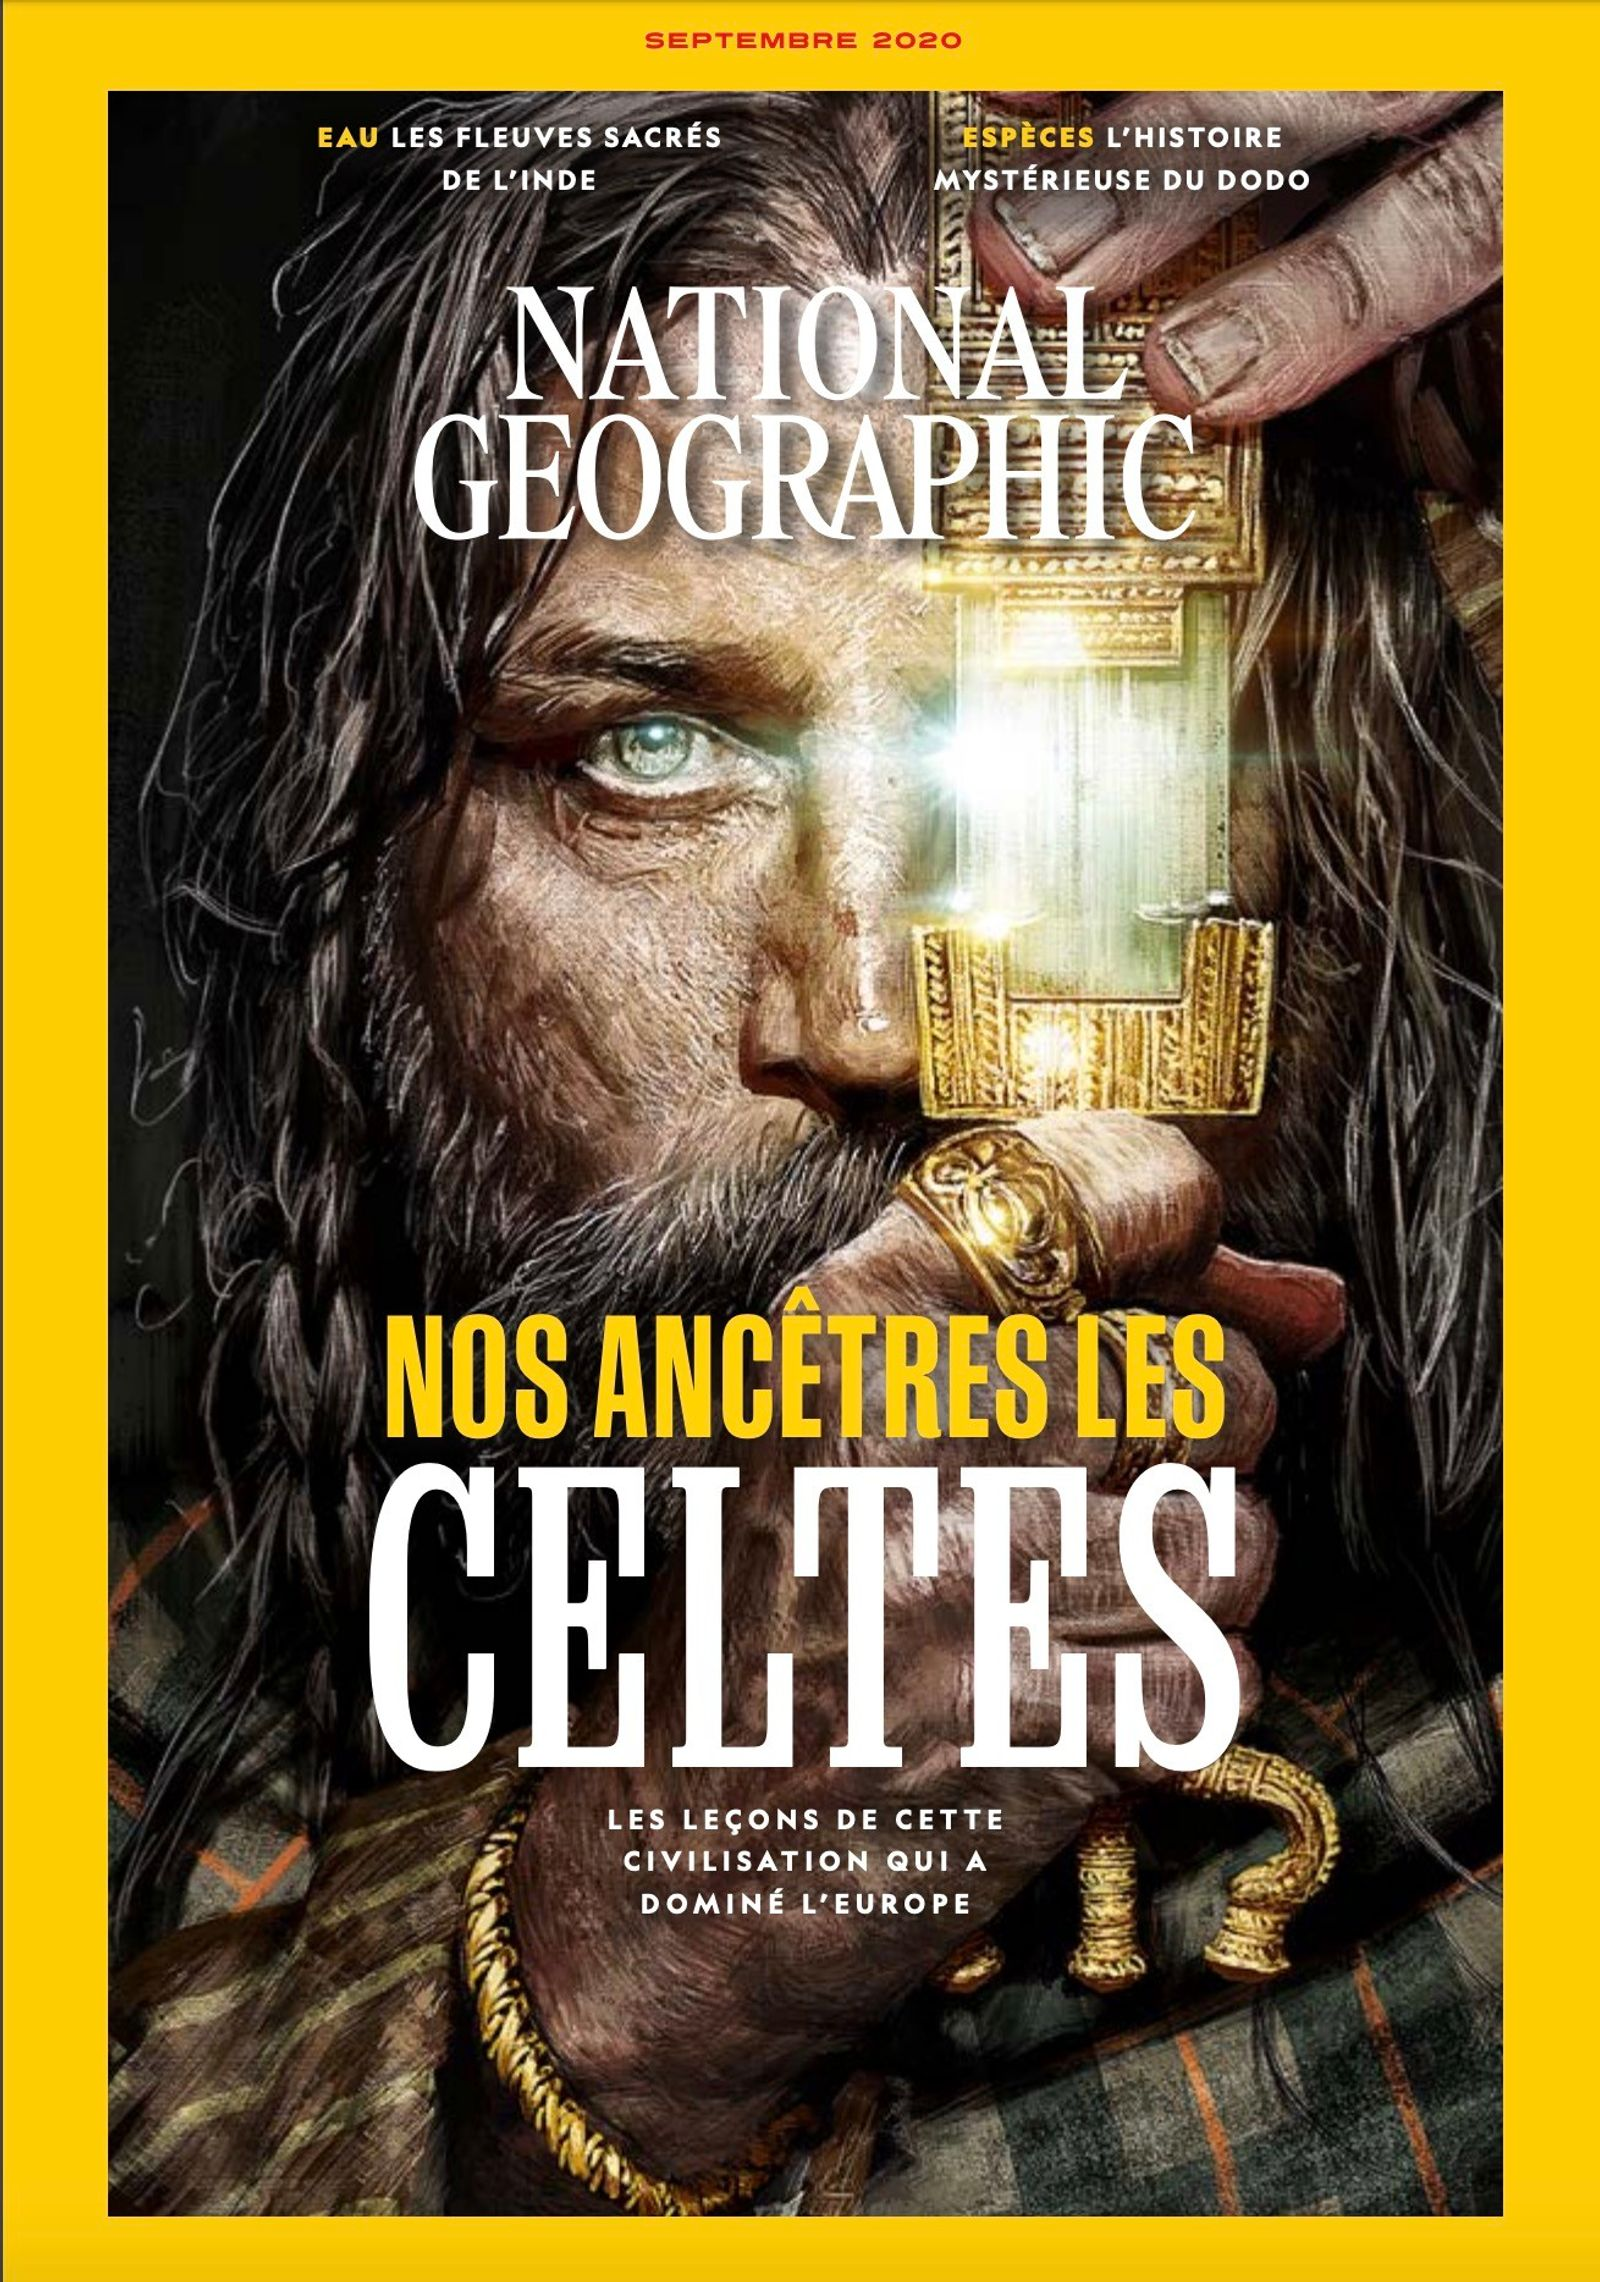 National Geographic septembre 2020